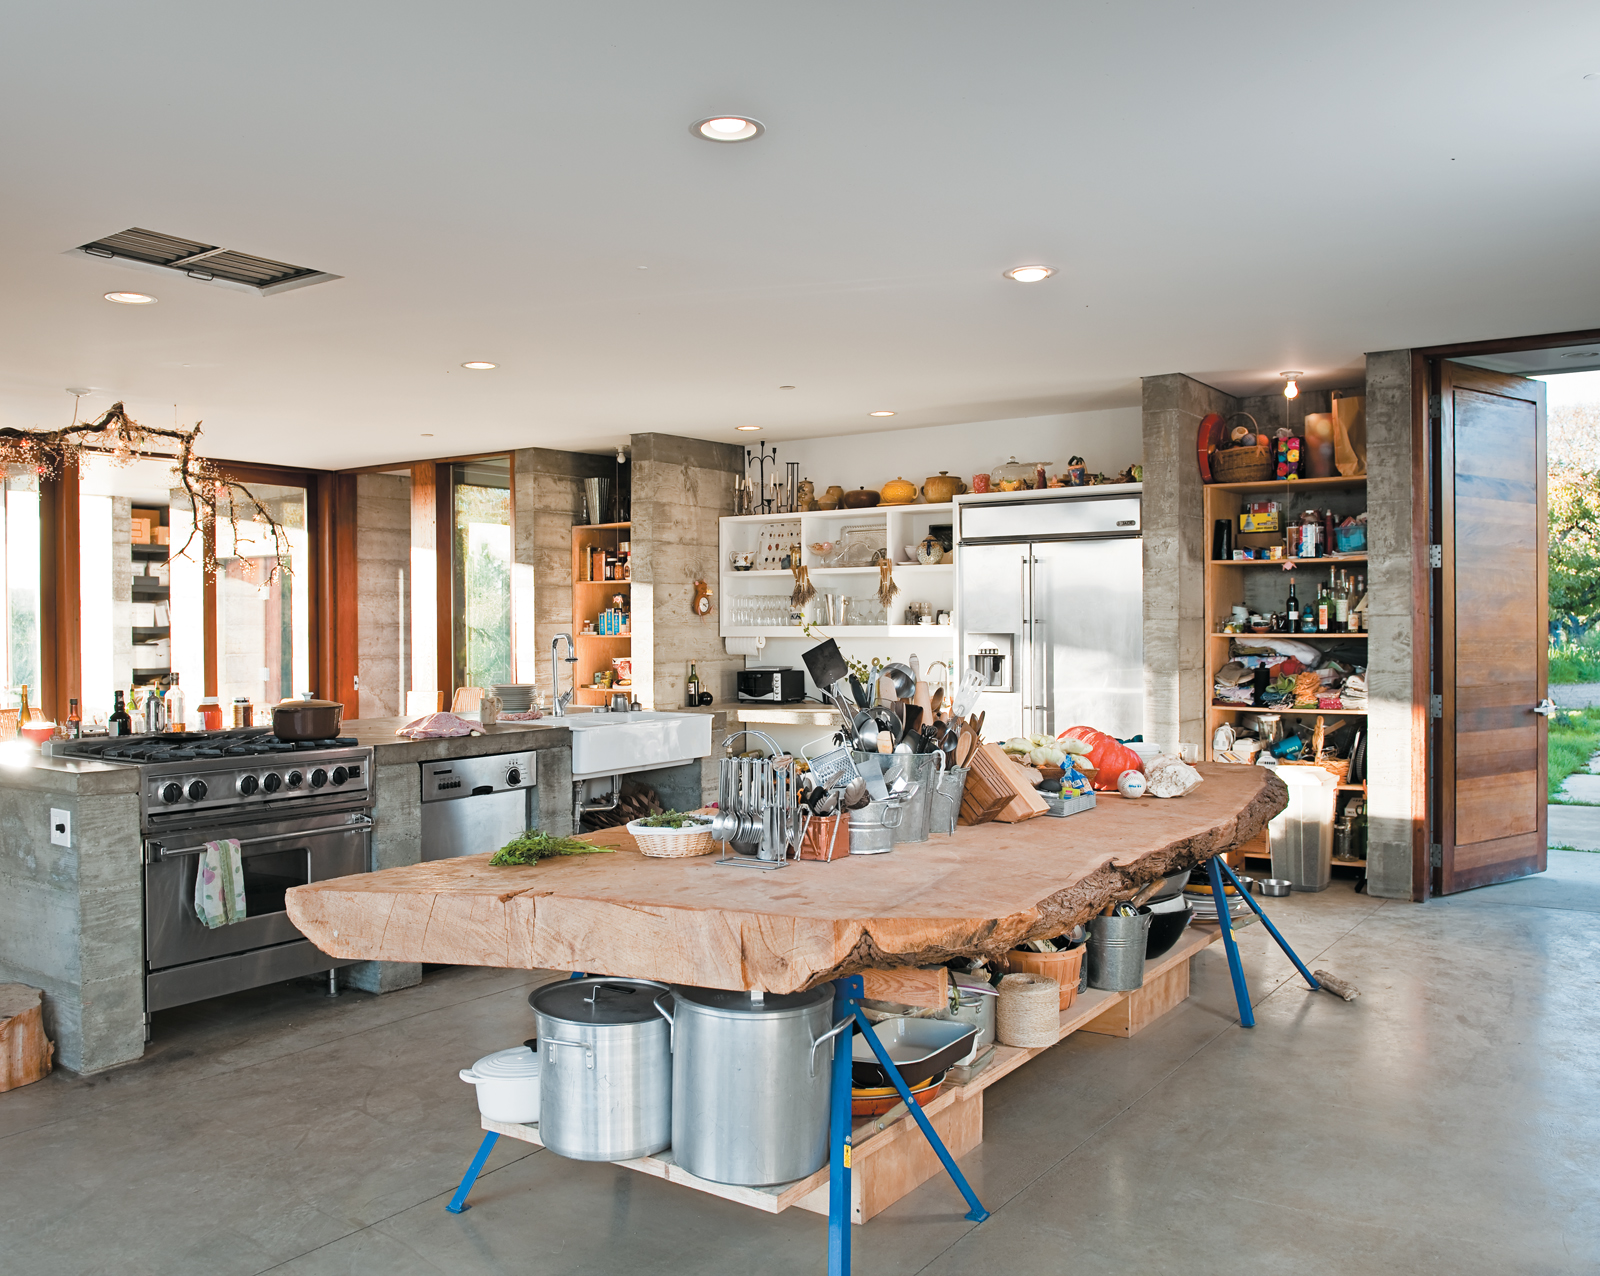 A massive slab of cypress perched atop sawhorses provides storage for pots and utensils.